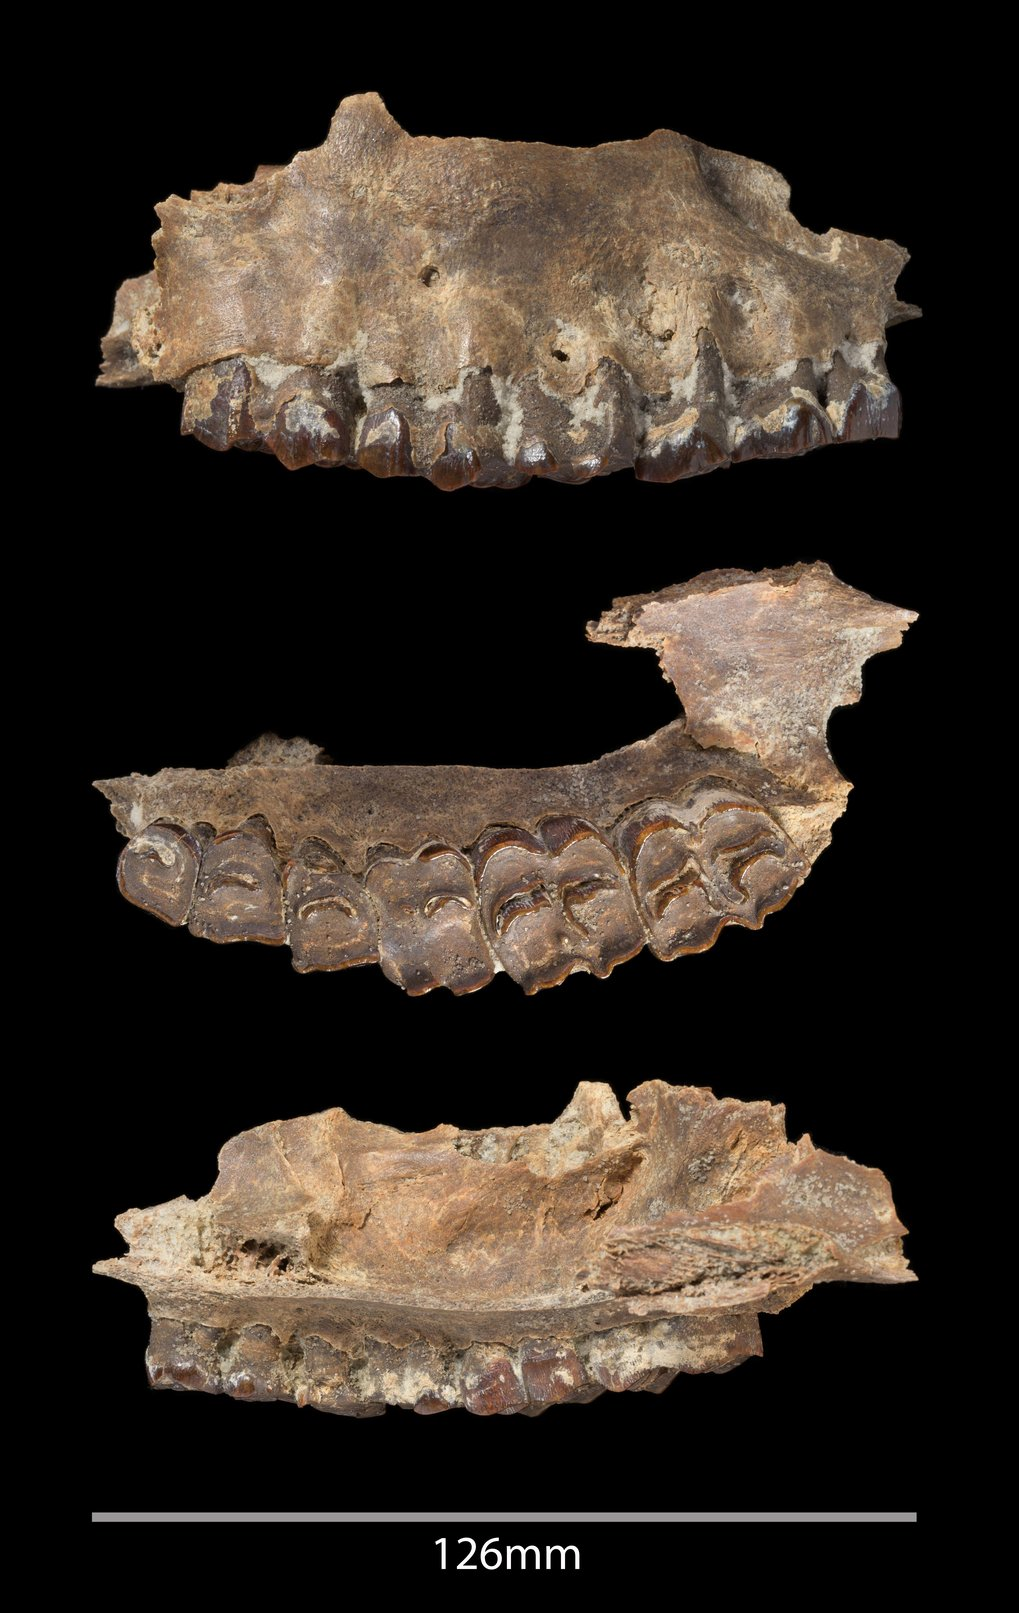 Mammal fossil recovered from the Ti's al Ghadah site, Saudi Arabia